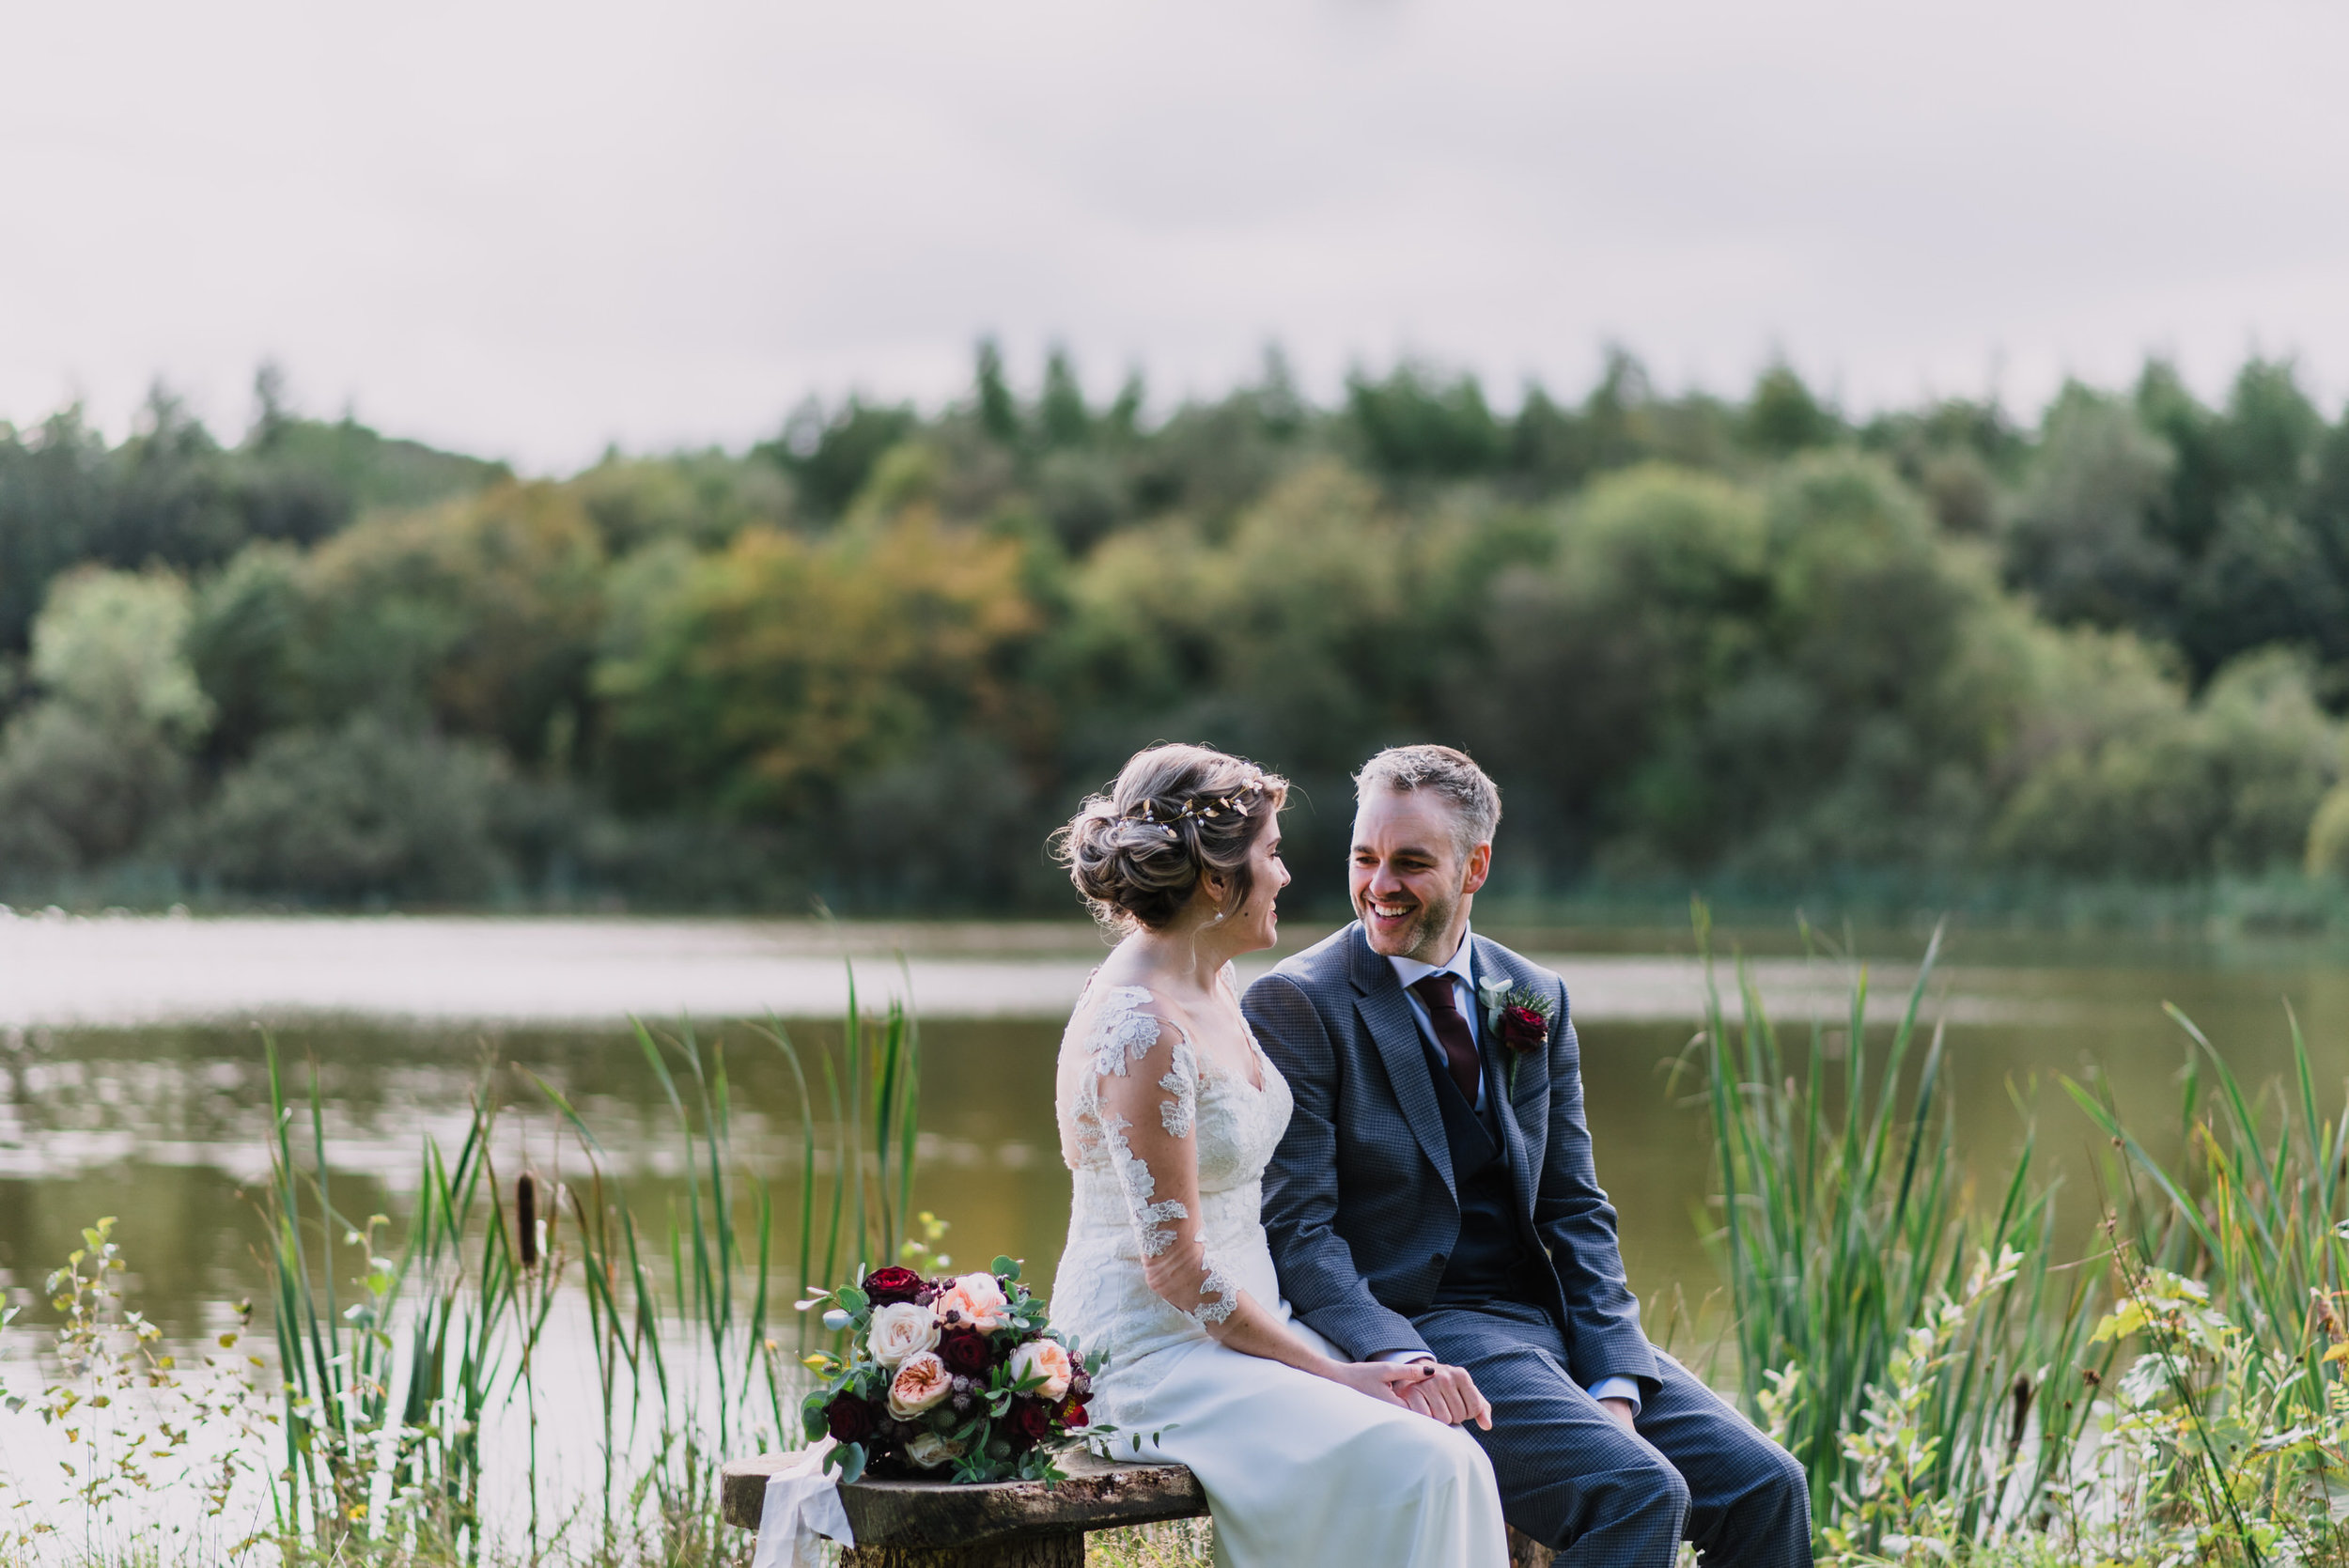 lissanoure castle wedding, northern ireland wedding photographer, romantic northern irish wedding venue, castle wedding ireland, natural wedding photography ni (84).jpg